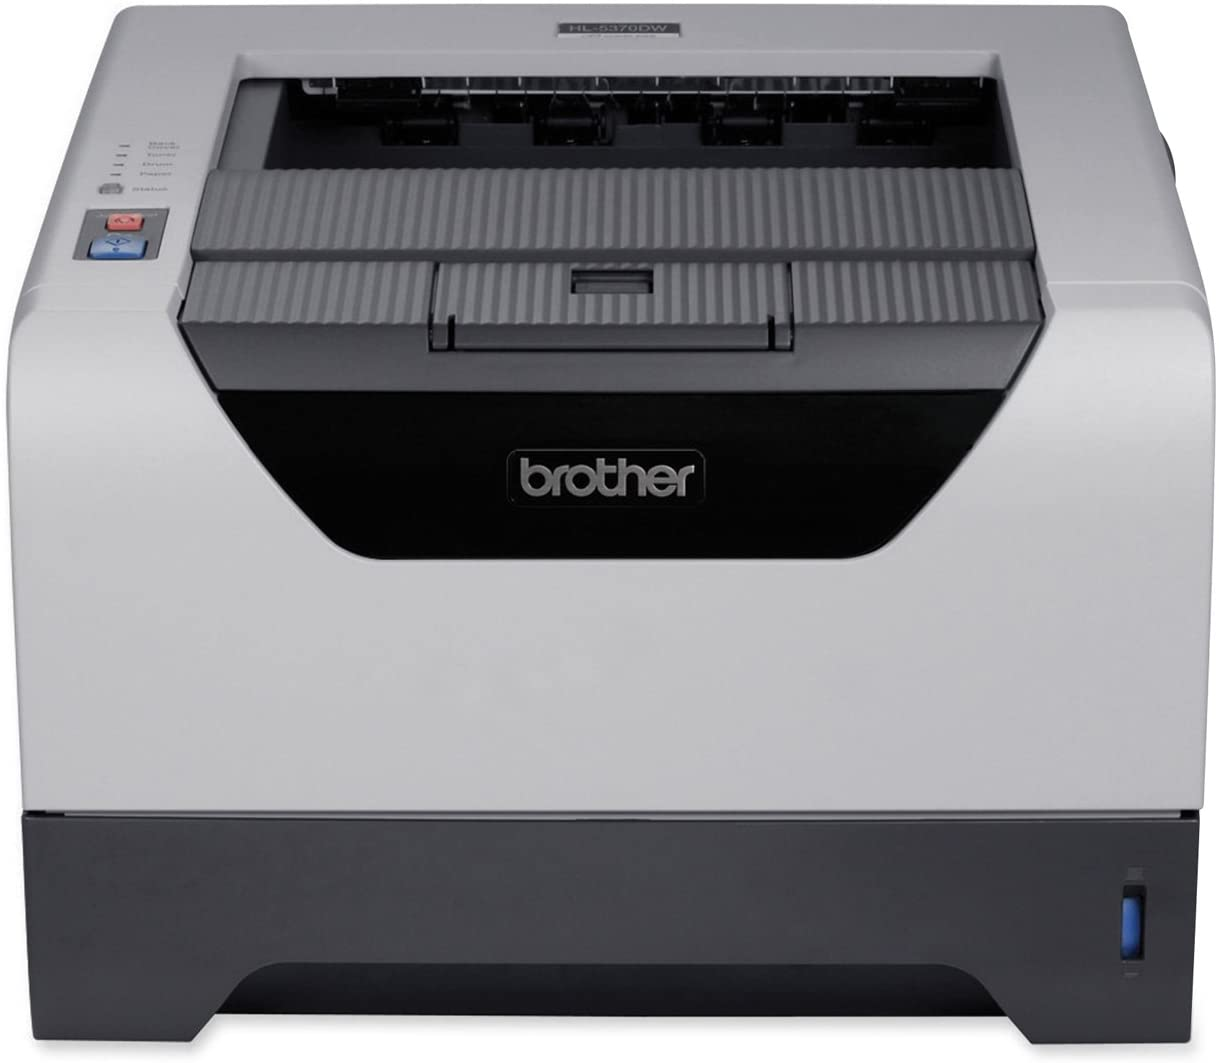 Brother-Laser-B&W-Printer,-Pre-owned